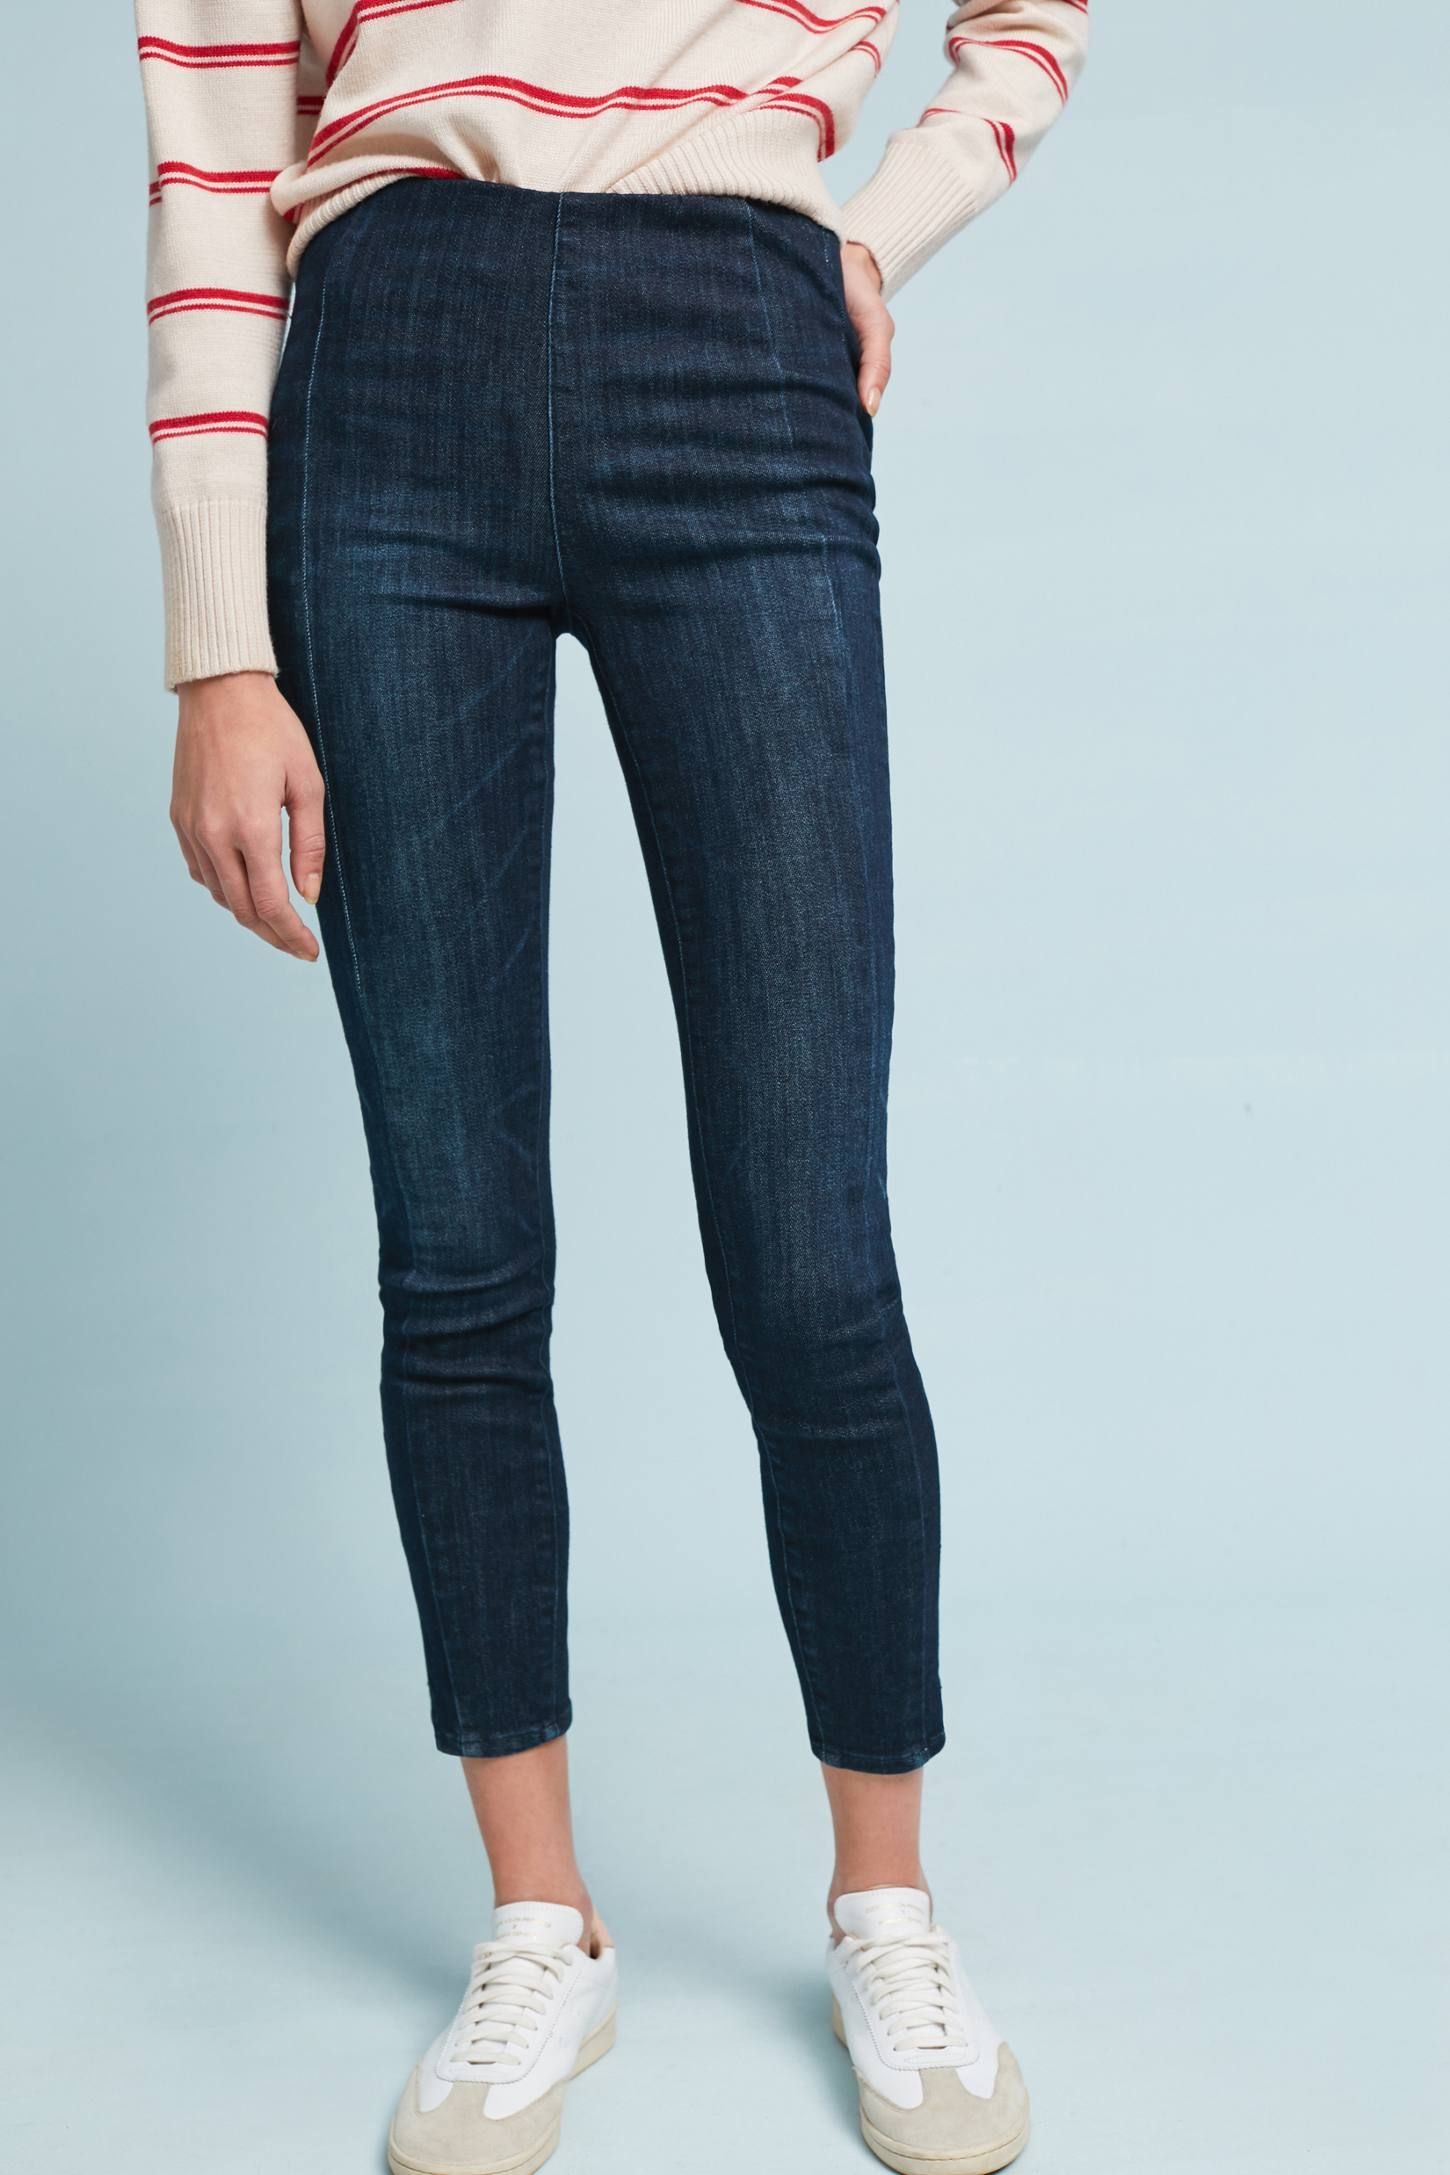 28937f419e9 Shop the Pilcro High-Rise Ankle Denim Leggings and more Anthropologie at  Anthropologie today. Read customer reviews